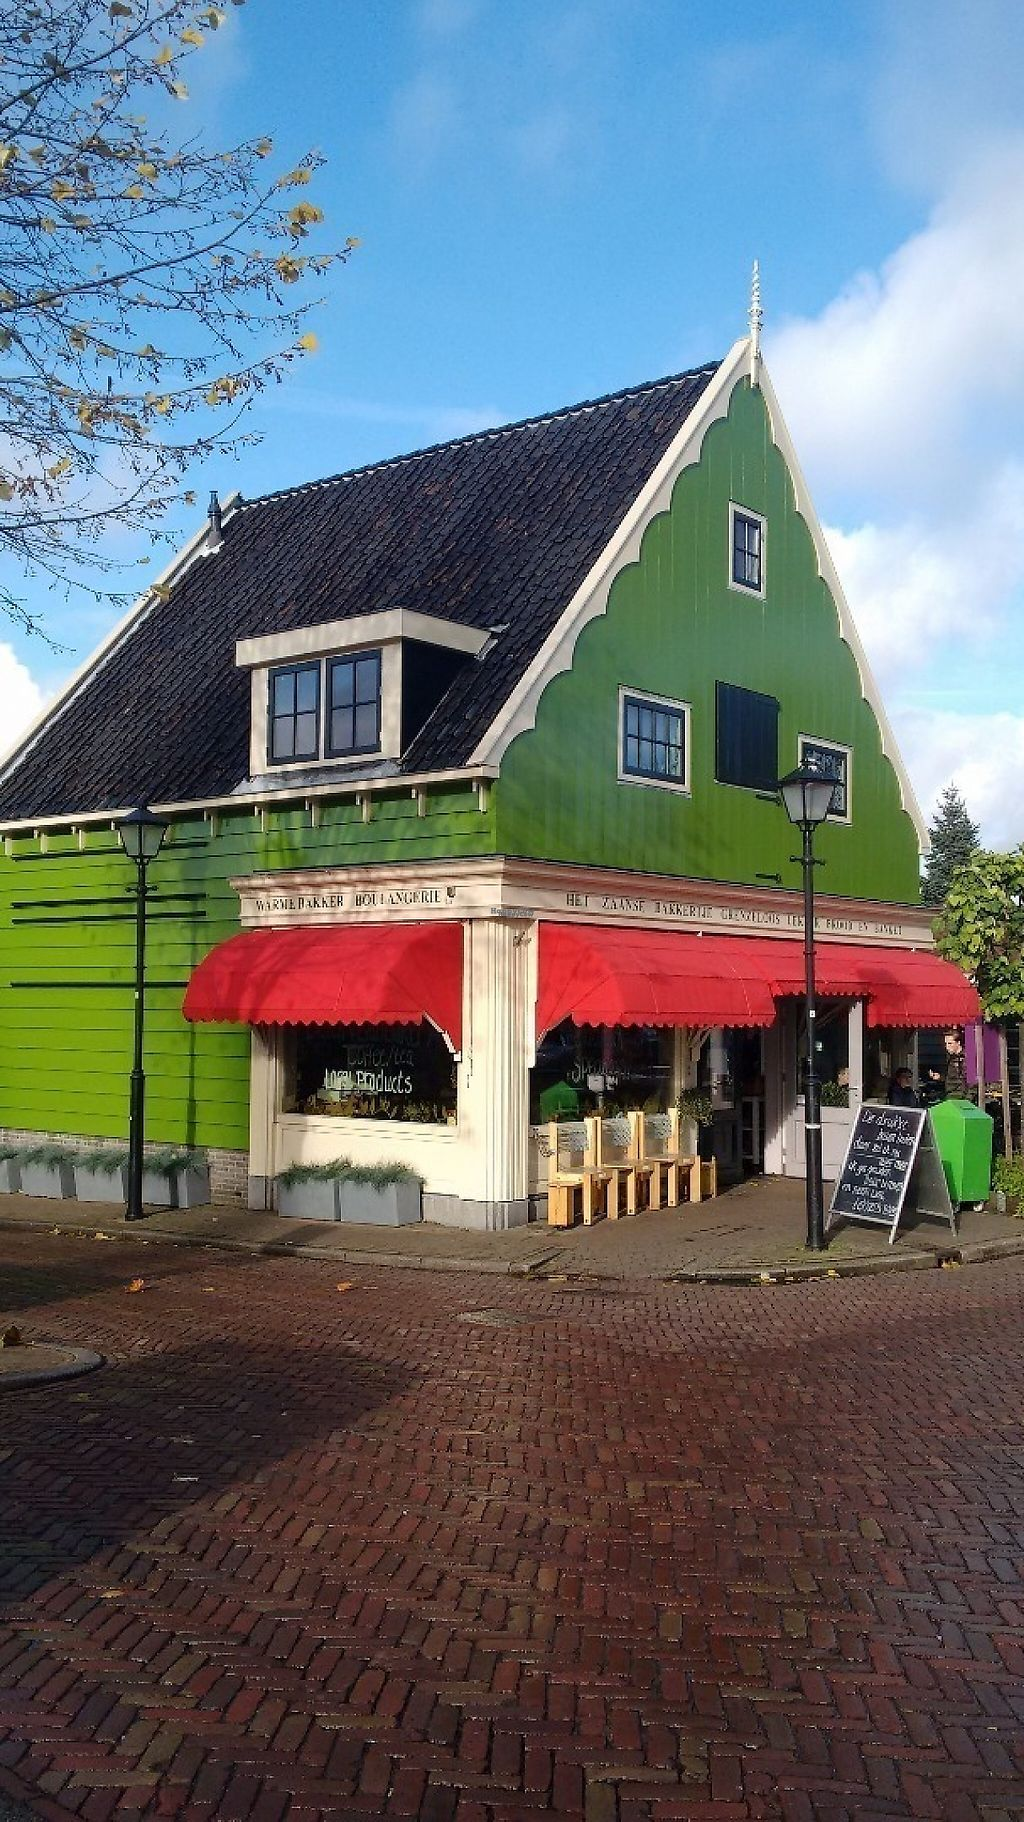 """Photo of Het Zaanse Bakkertje  by <a href=""""/members/profile/StephenEamonn"""">StephenEamonn</a> <br/>Beautiful old Dutch exterior <br/> November 16, 2016  - <a href='/contact/abuse/image/70817/190937'>Report</a>"""